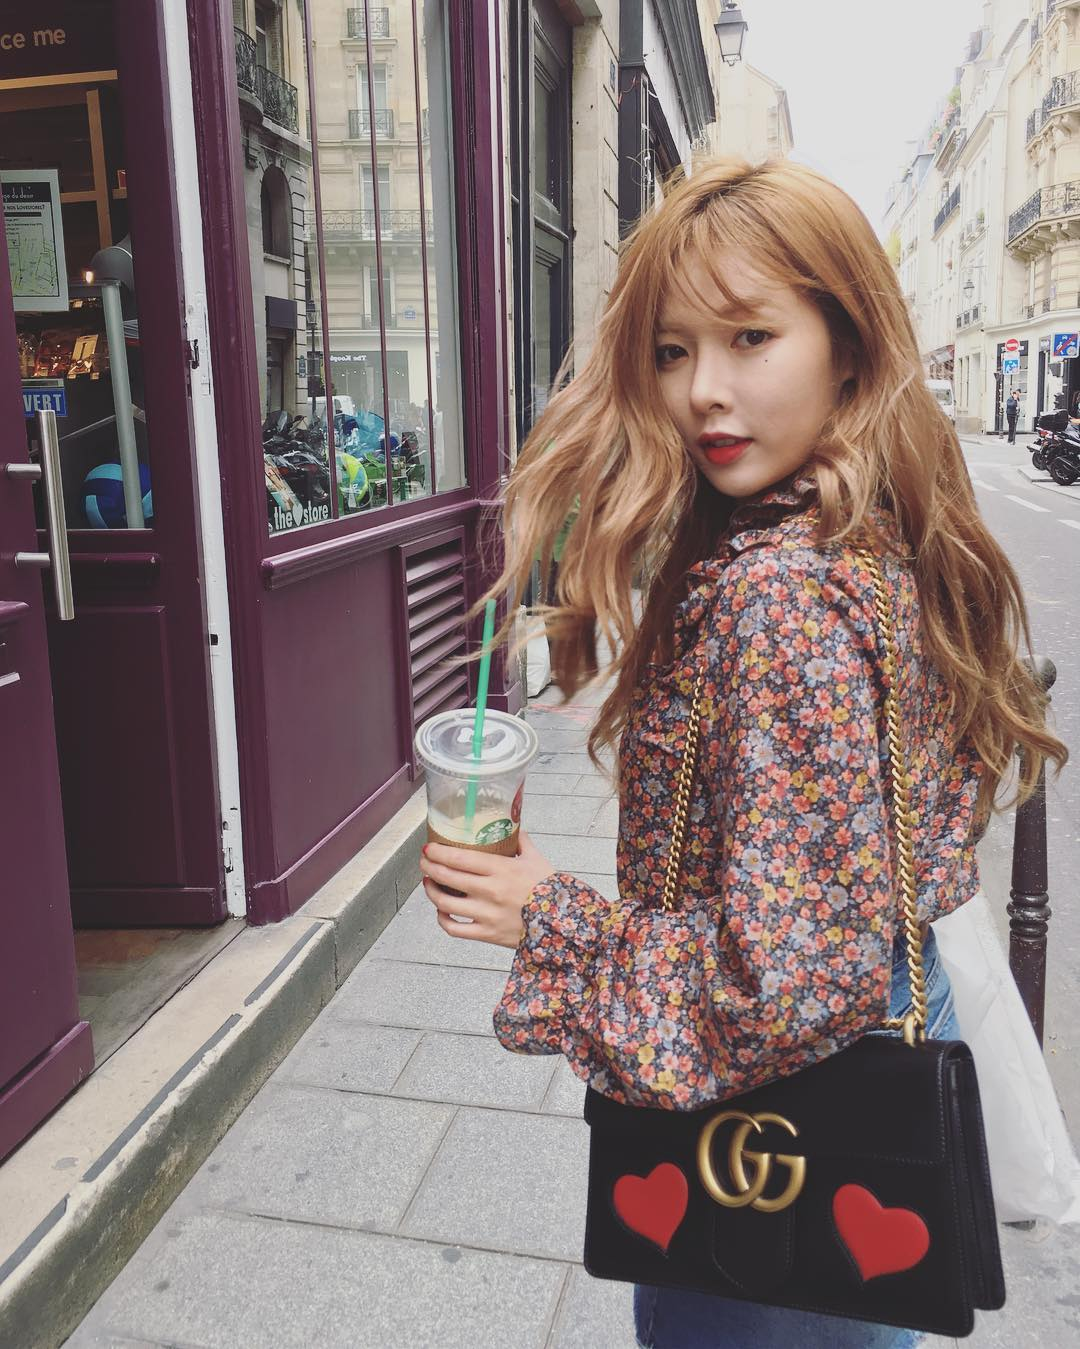 Hyunas culture shock after a French man winked at her